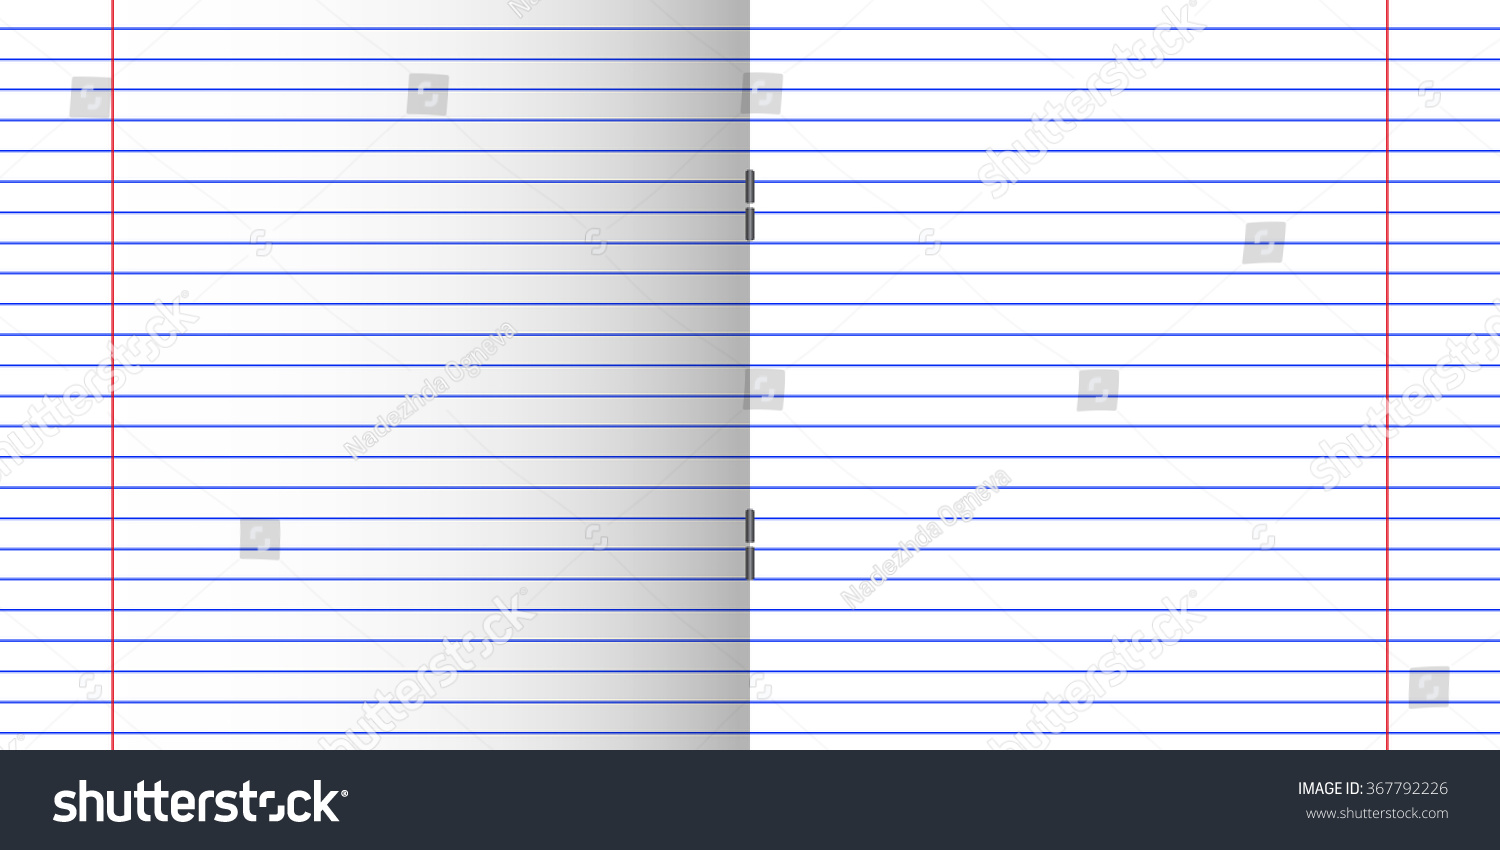 ... lined texture worksheet pattern, line blank template student note book